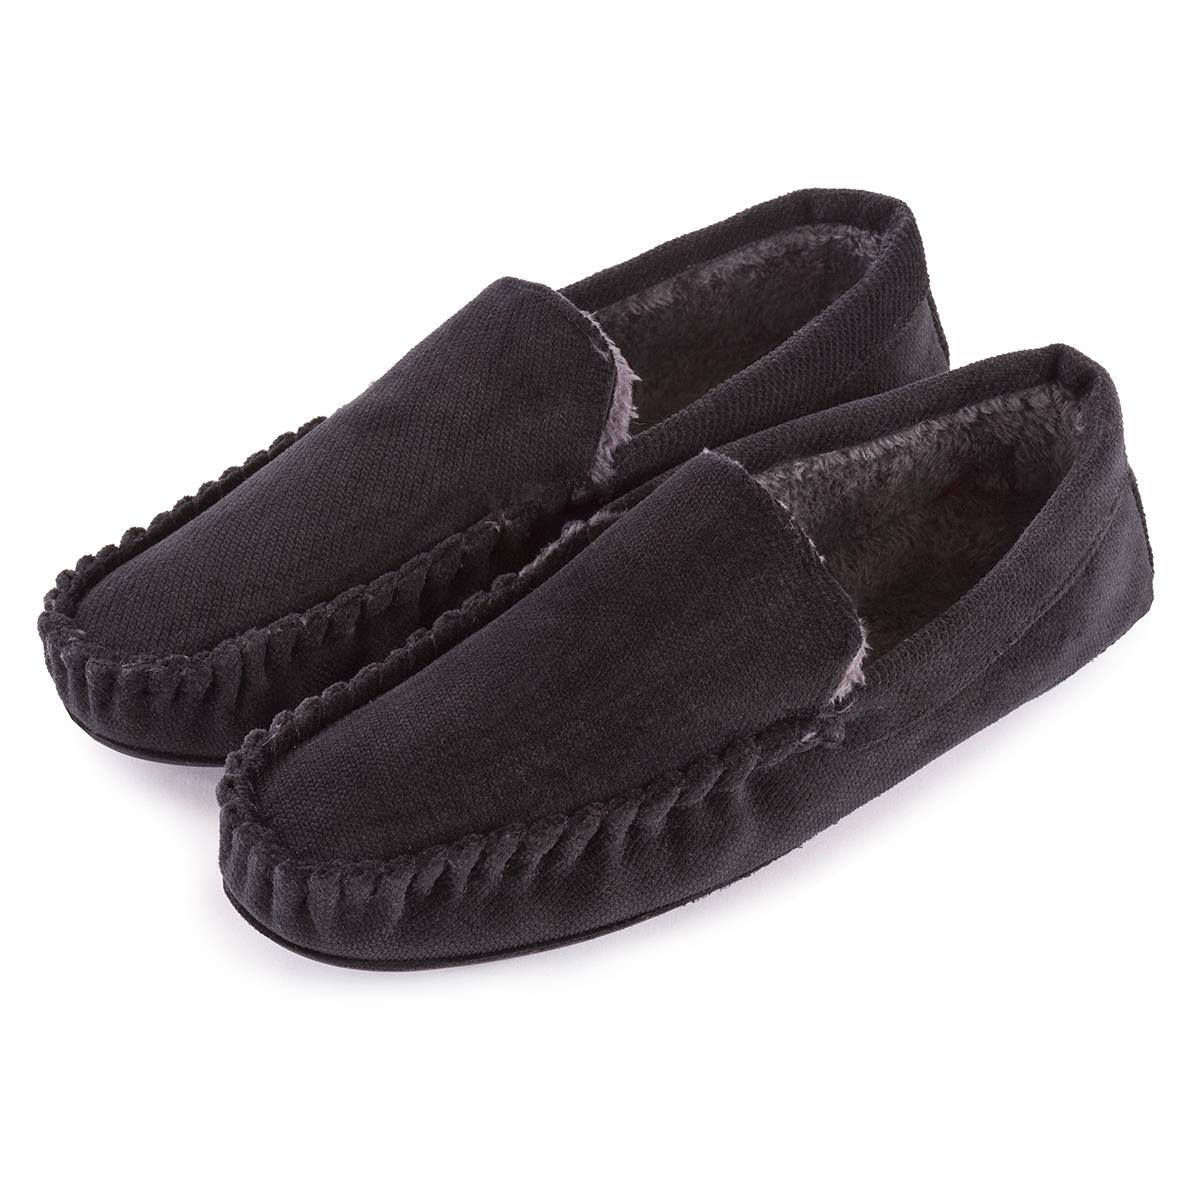 c8fadc7039f totes Mens Cord Moccasin Slippers